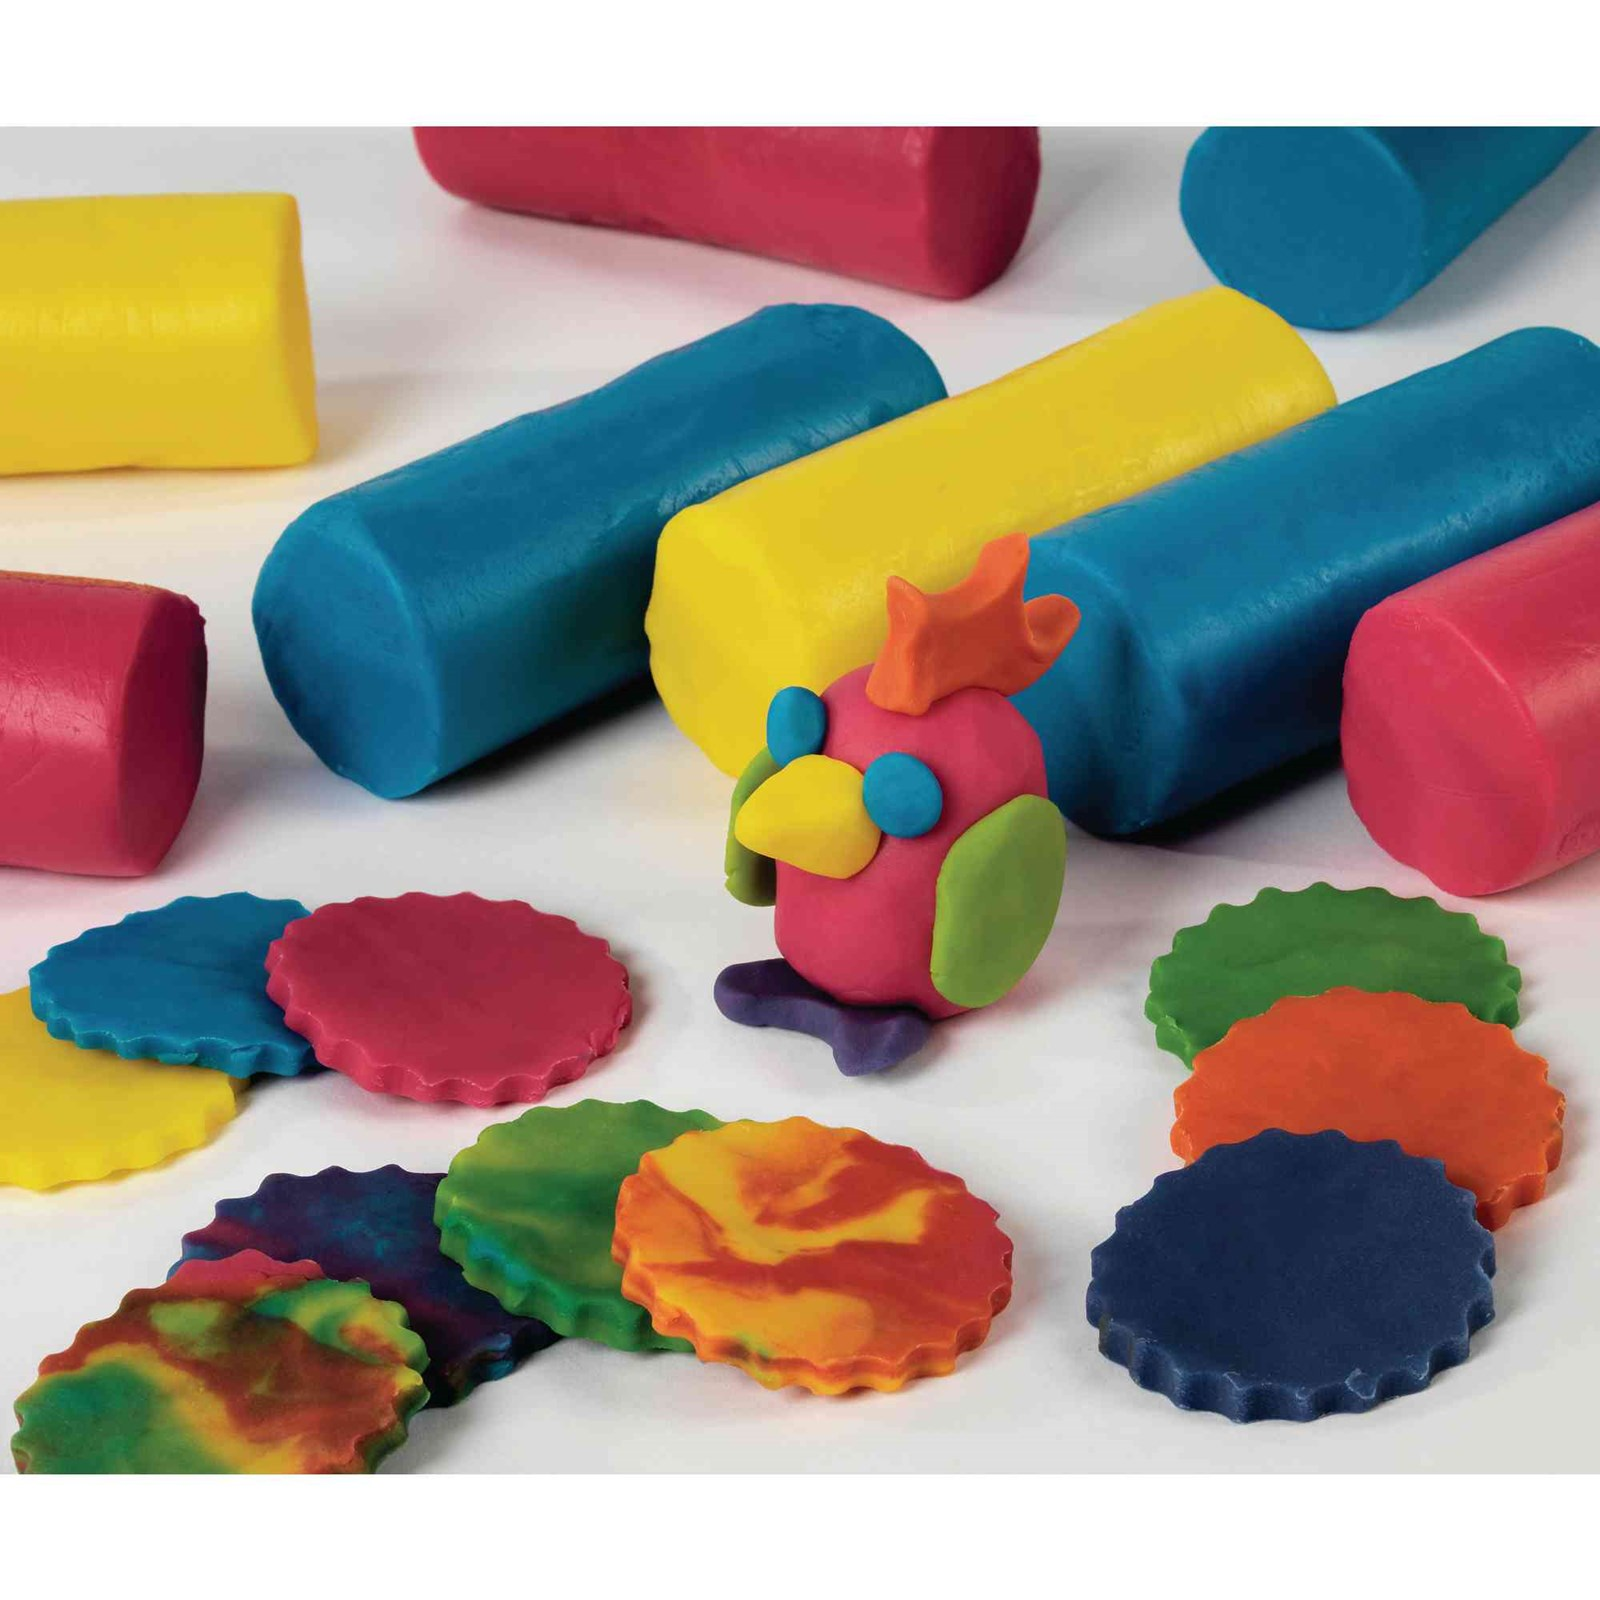 Colour Mixing Soft Dough - Pack of 6